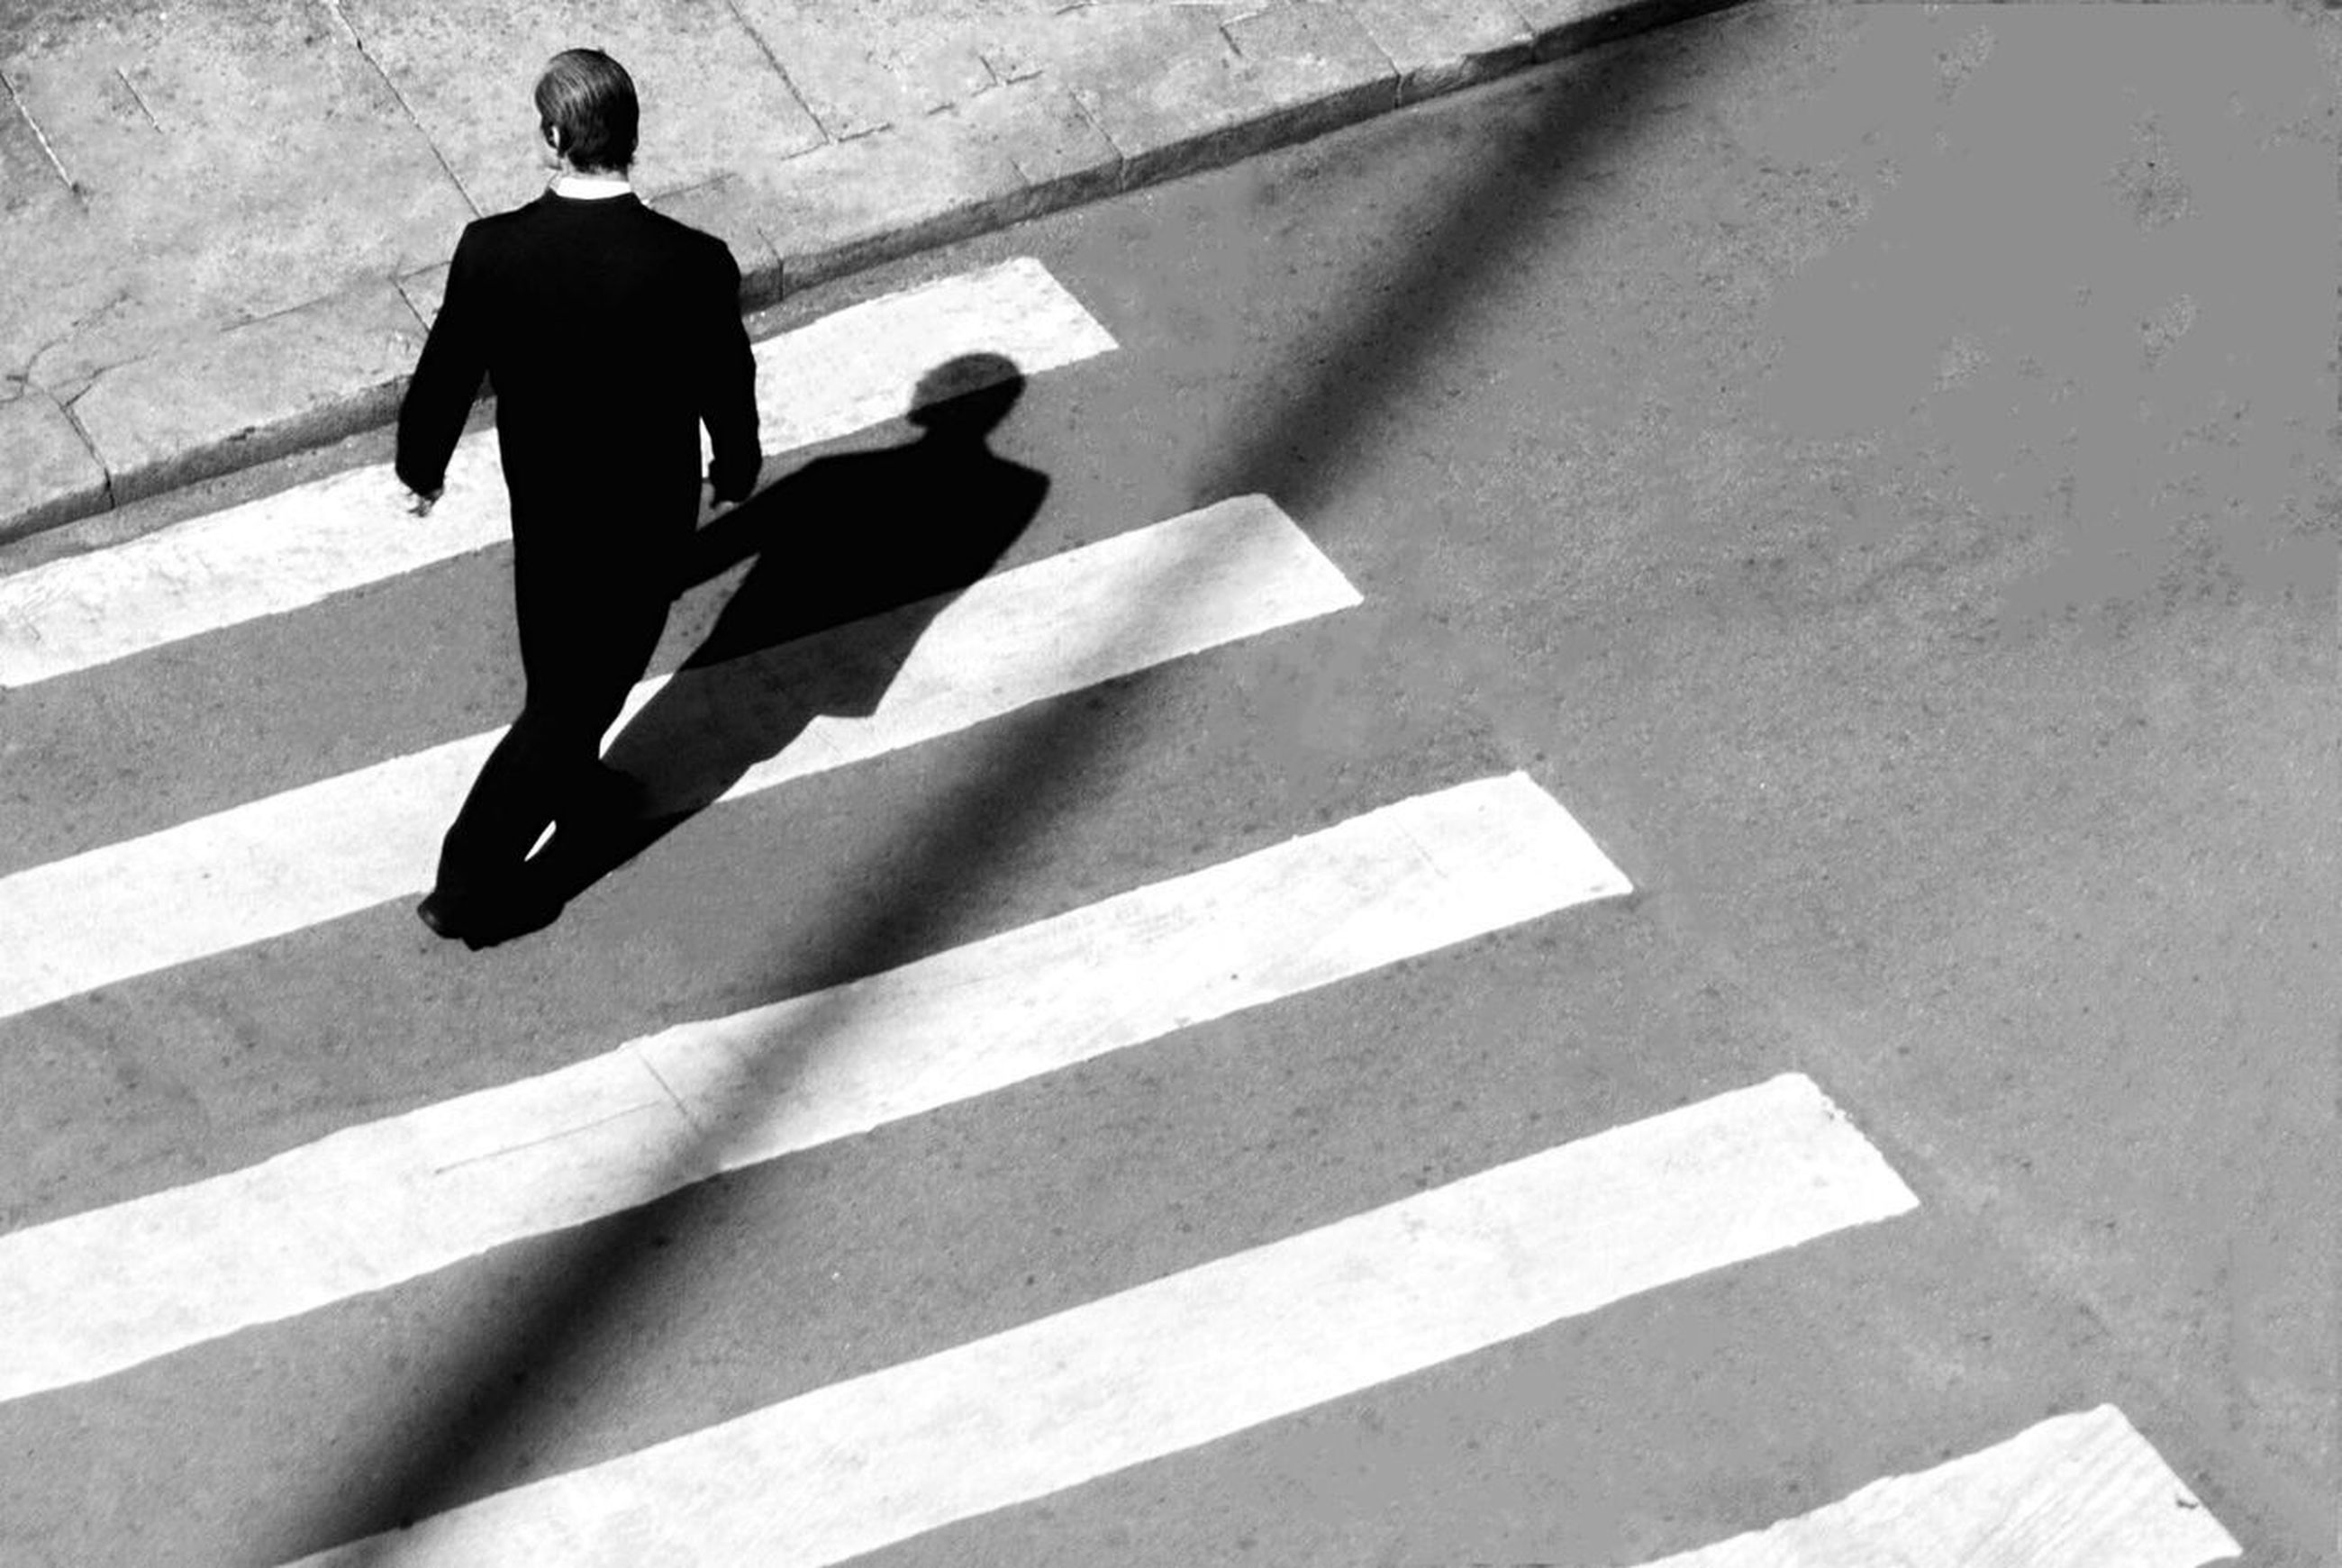 shadow, real people, high angle view, sunlight, men, city, road, street, lifestyles, day, people, walking, sign, marking, rear view, road marking, architecture, transportation, nature, outdoors